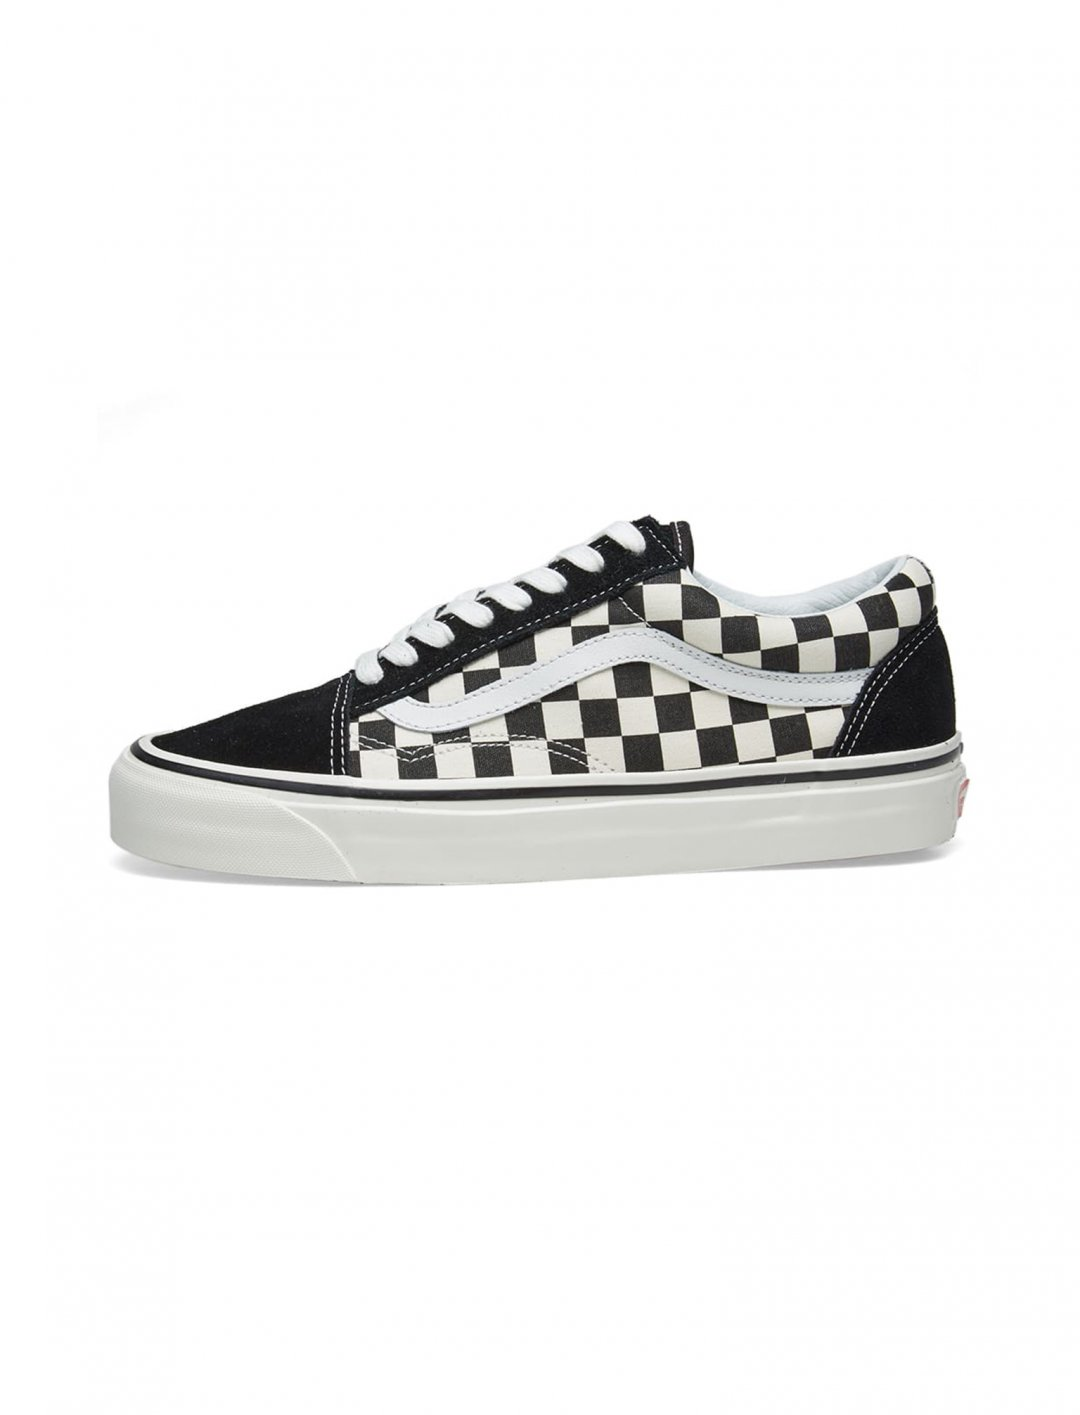 "Old Skool 36 Shoes {""id"":12,""product_section_id"":1,""name"":""Shoes"",""order"":12} Vans"